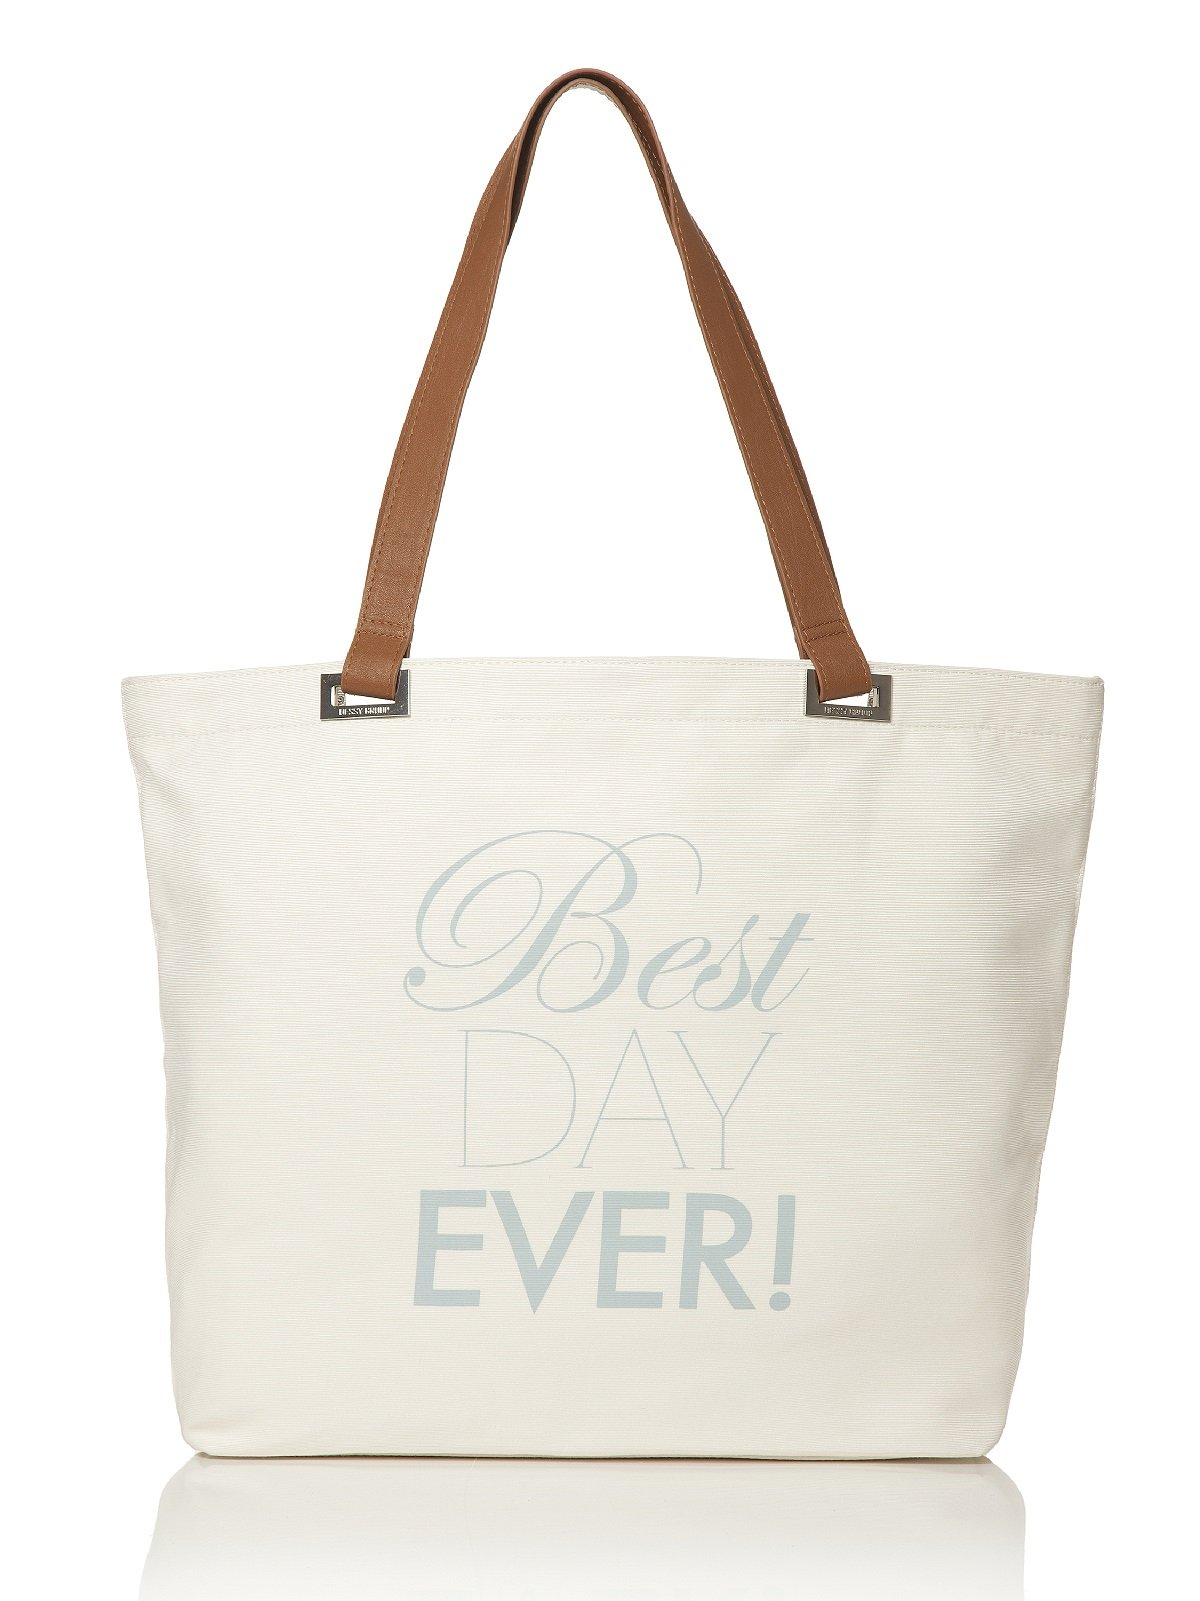 Best Day Ever Tote Bag by Dessy - Ivory